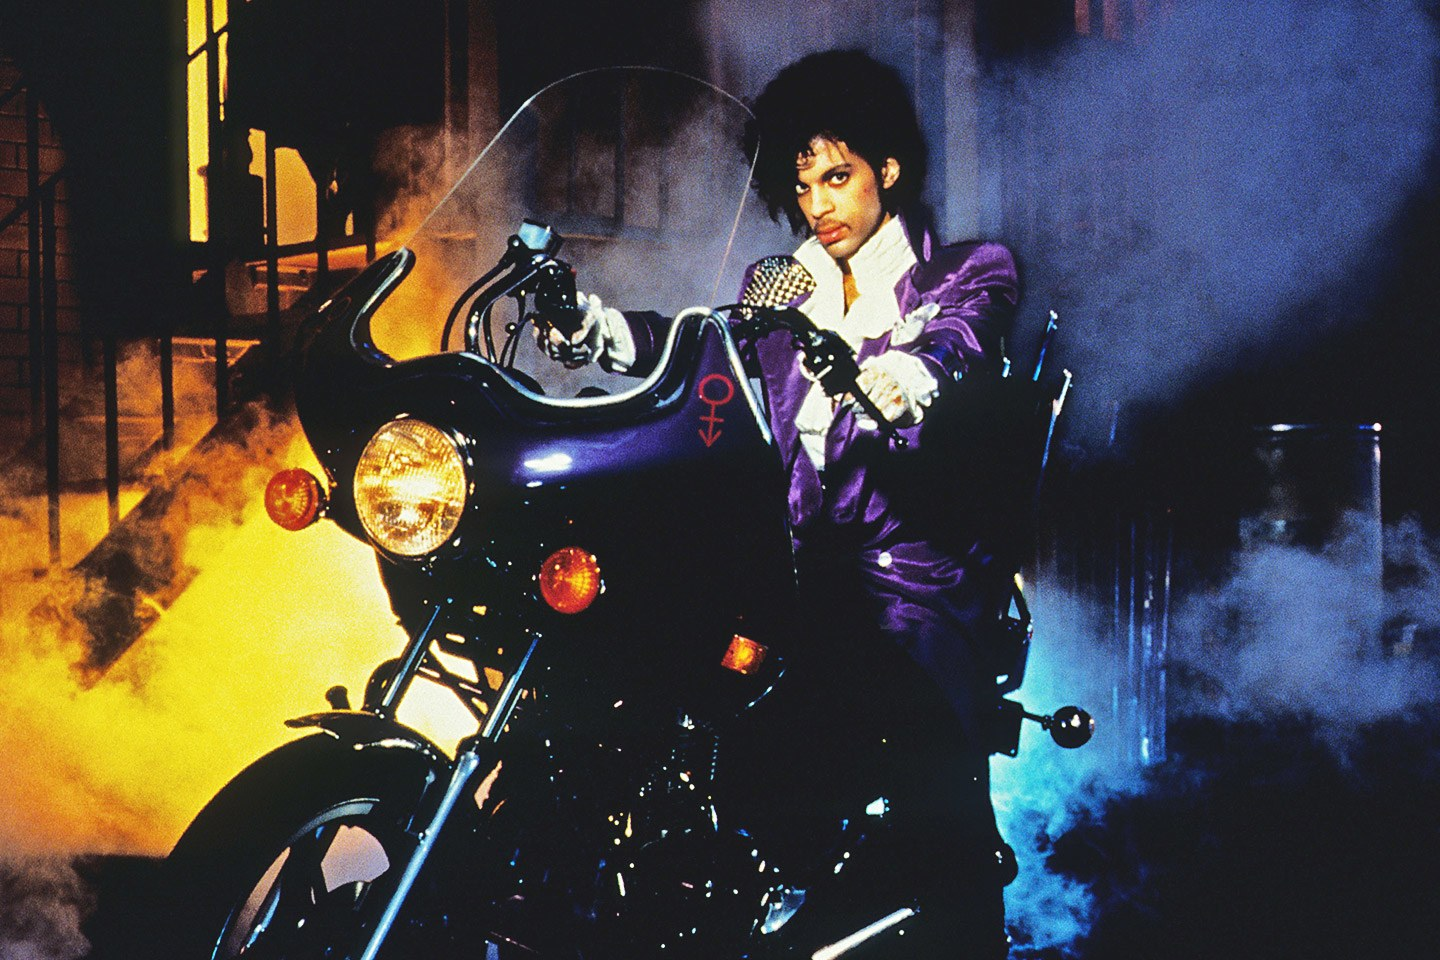 We need to talk about carbon - otherwise we will have Purple Rain...